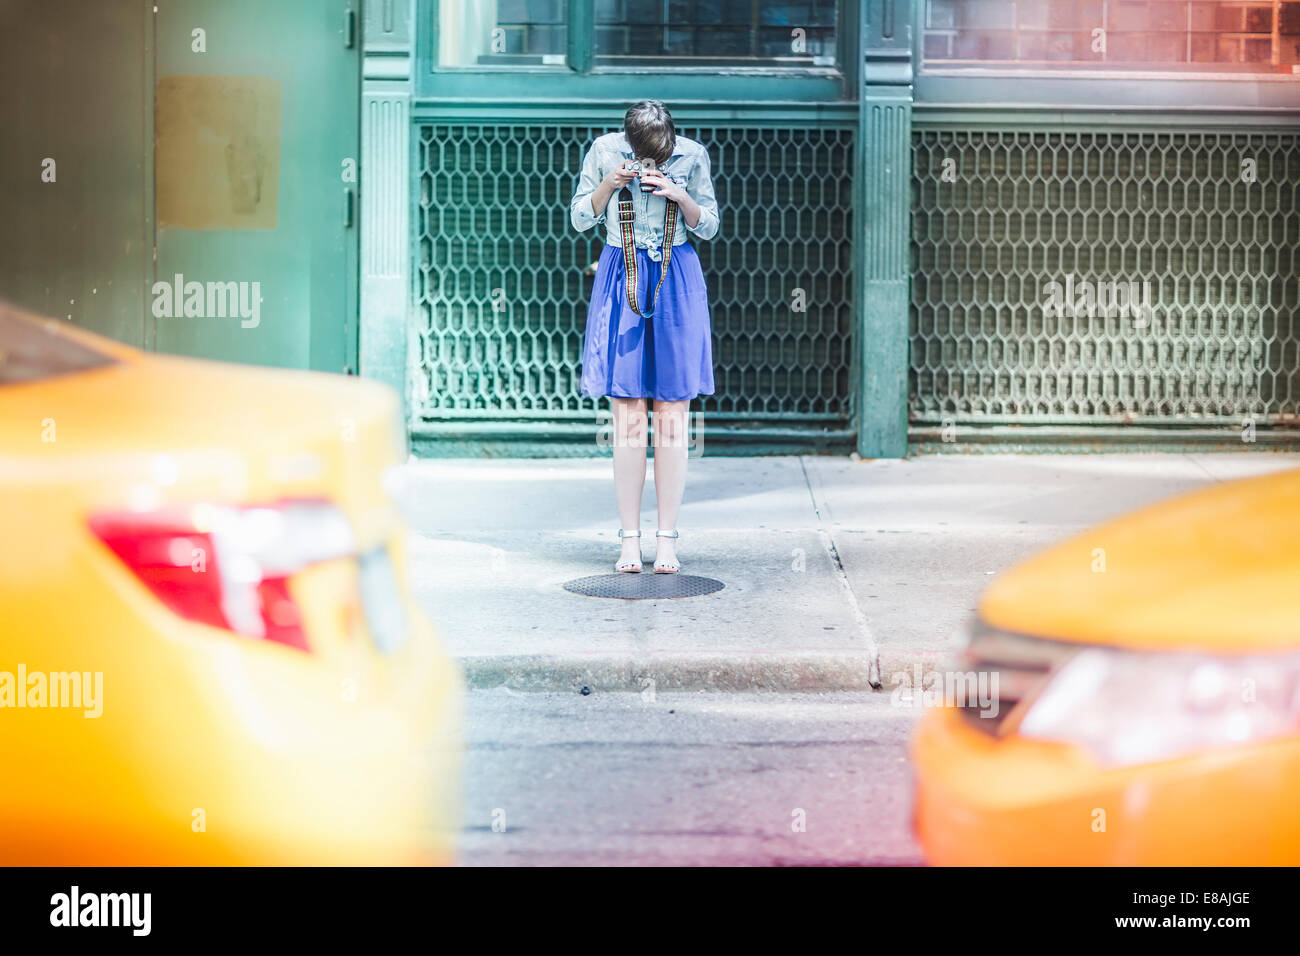 Woman photographing on street, New York, États-Unis Photo Stock